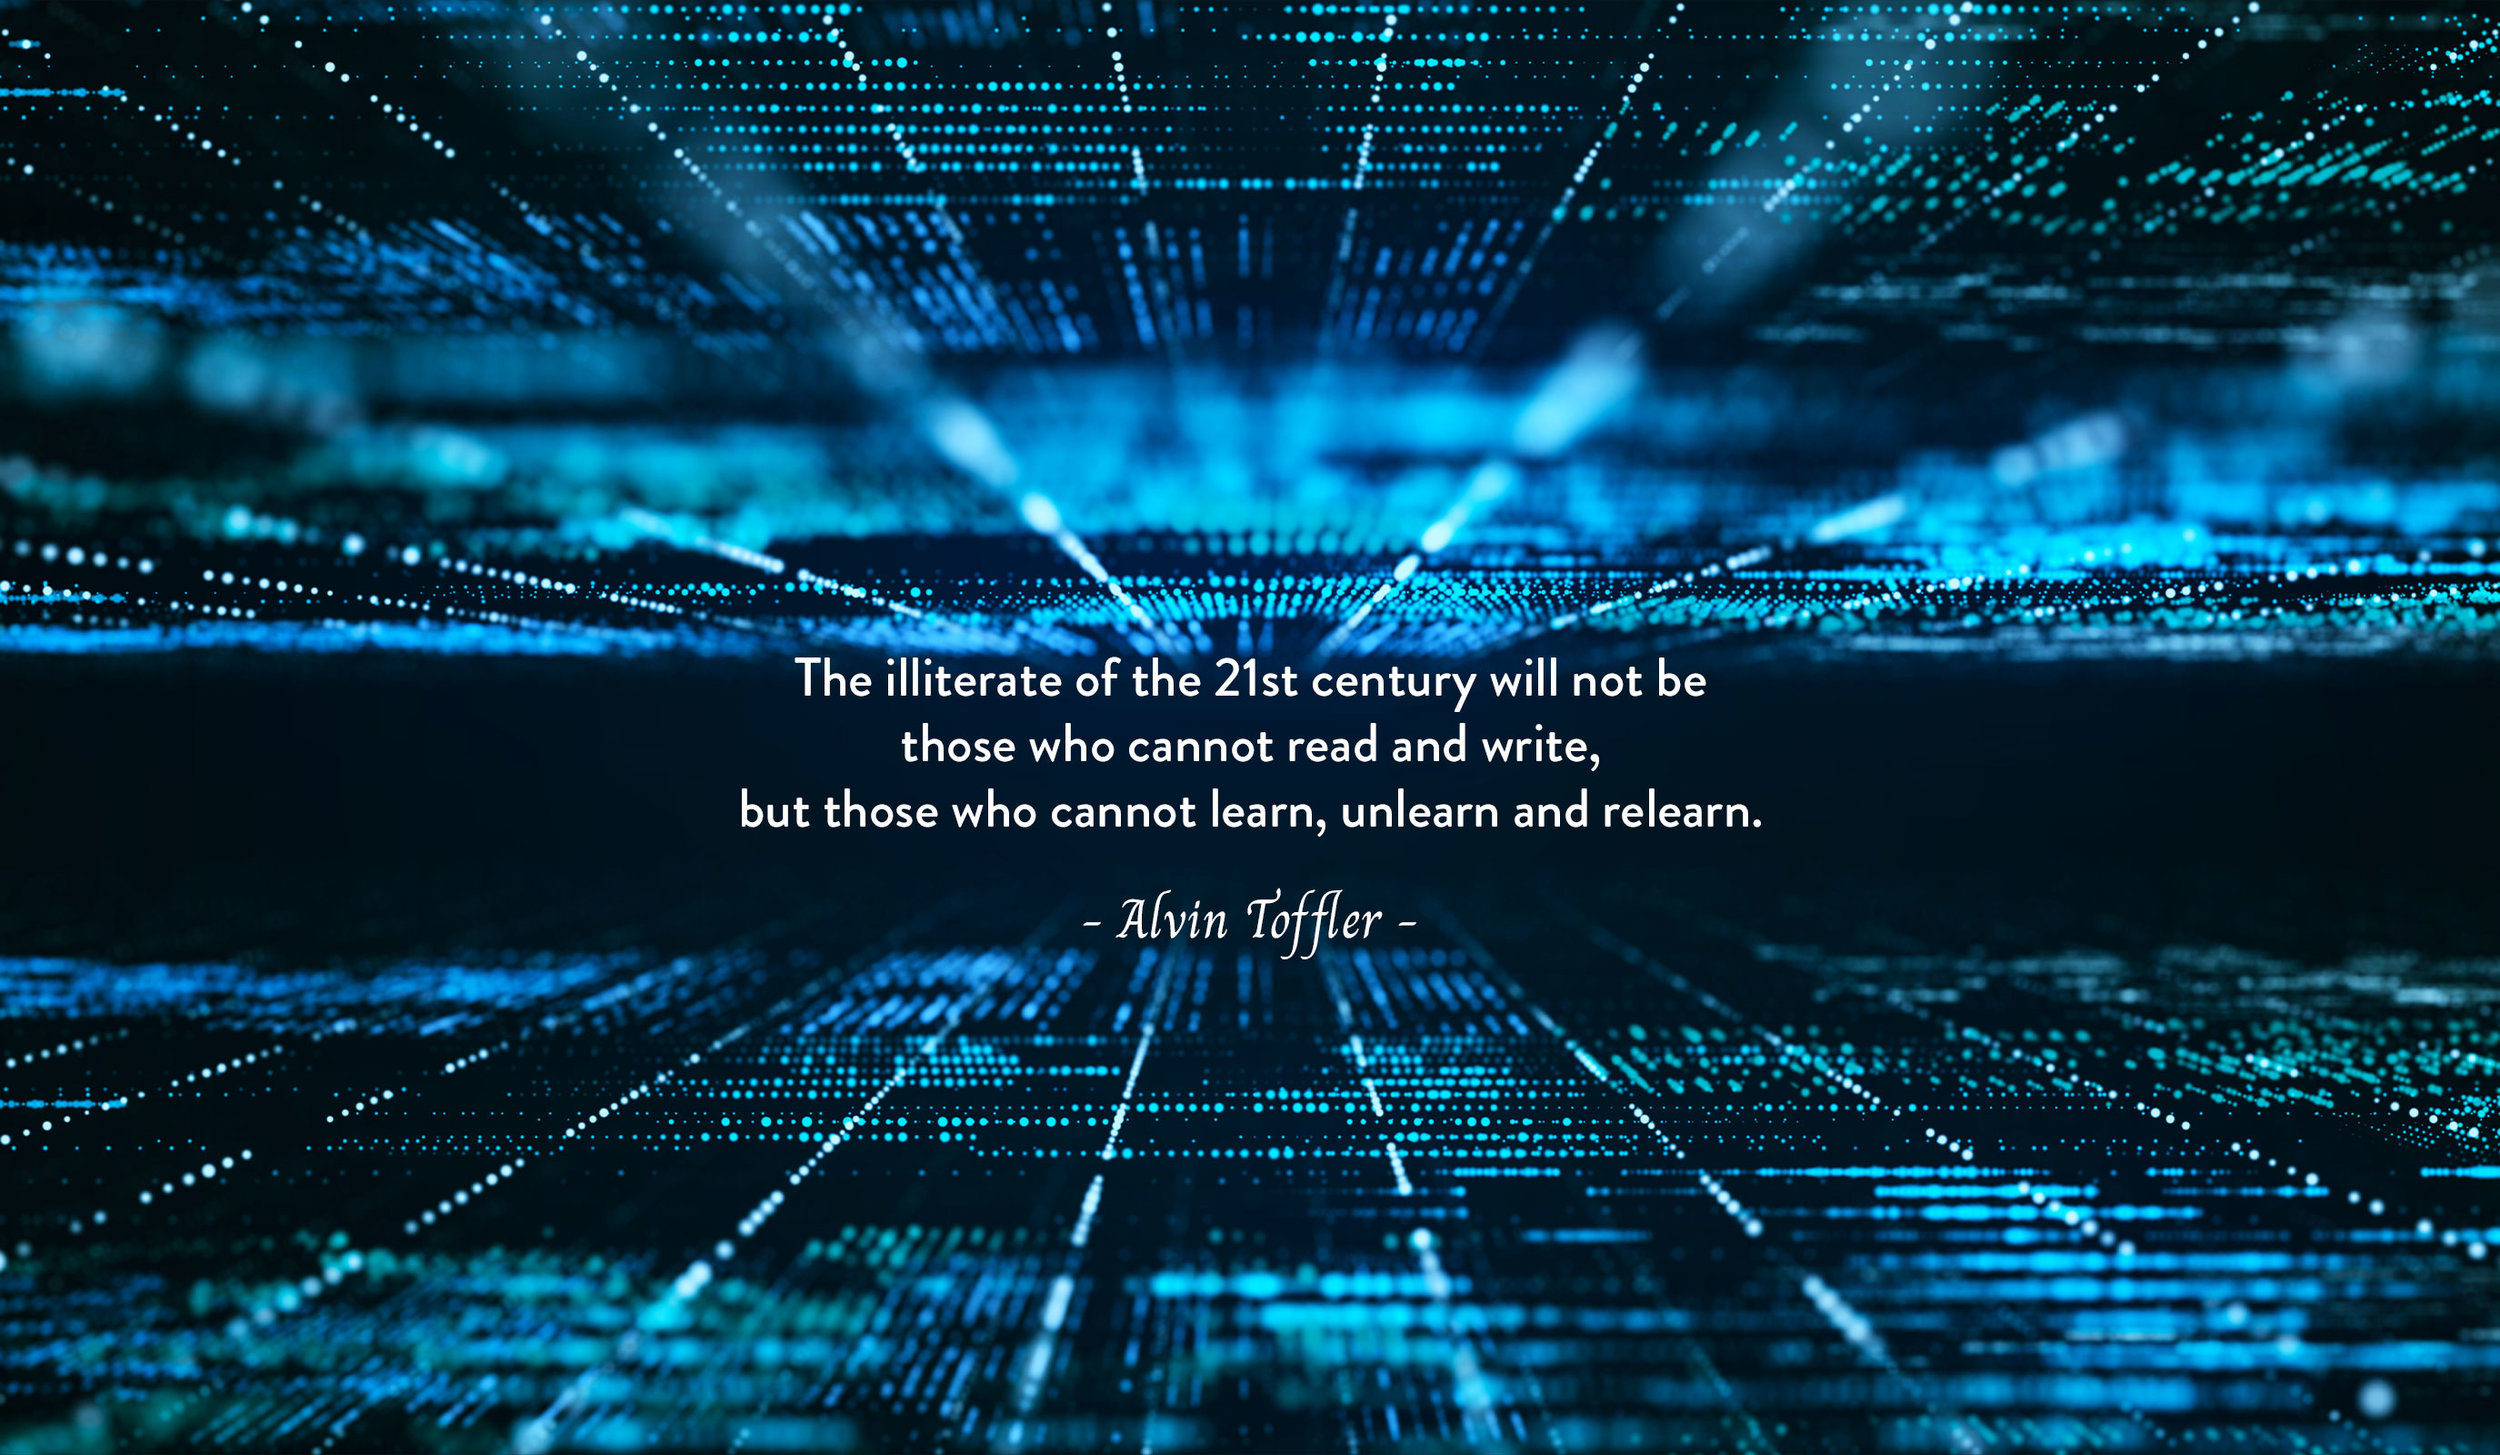 Quote by Alvin Toffler on the illiteracy of the 21st century